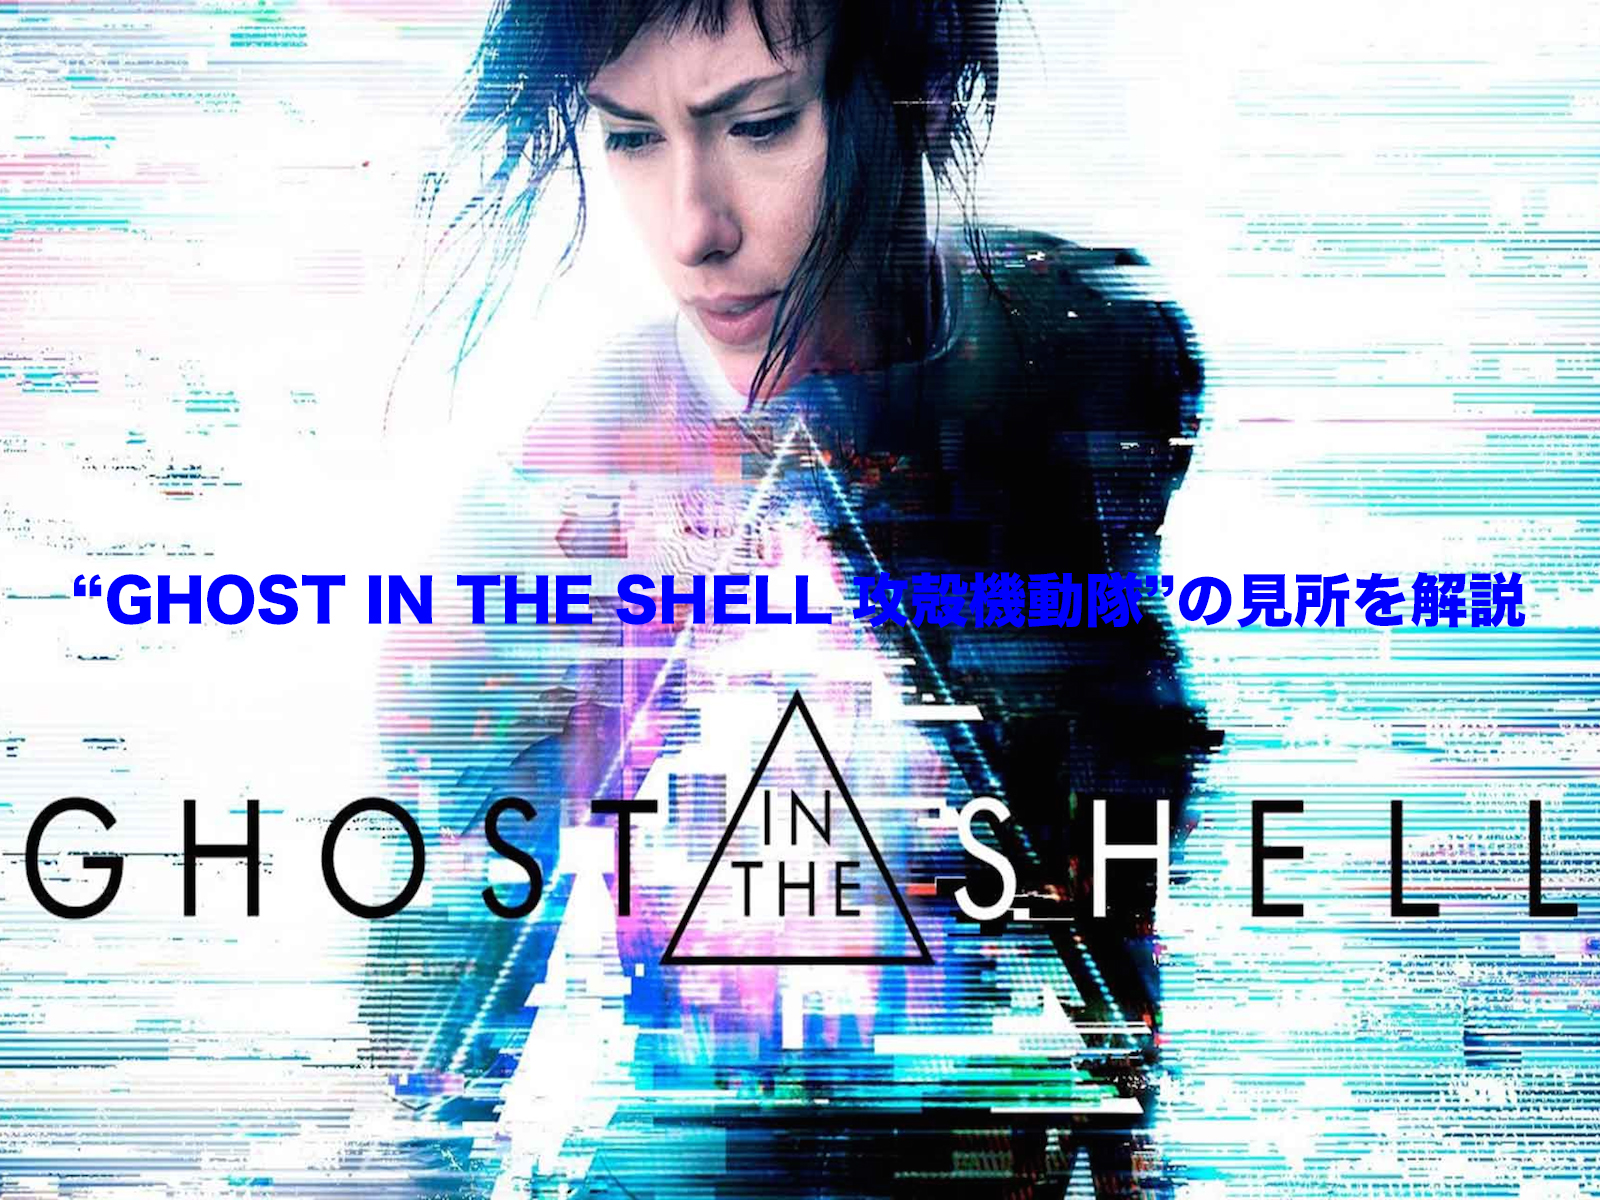 GHOST IN THE SHELL 攻殻機動隊 の見所を解説